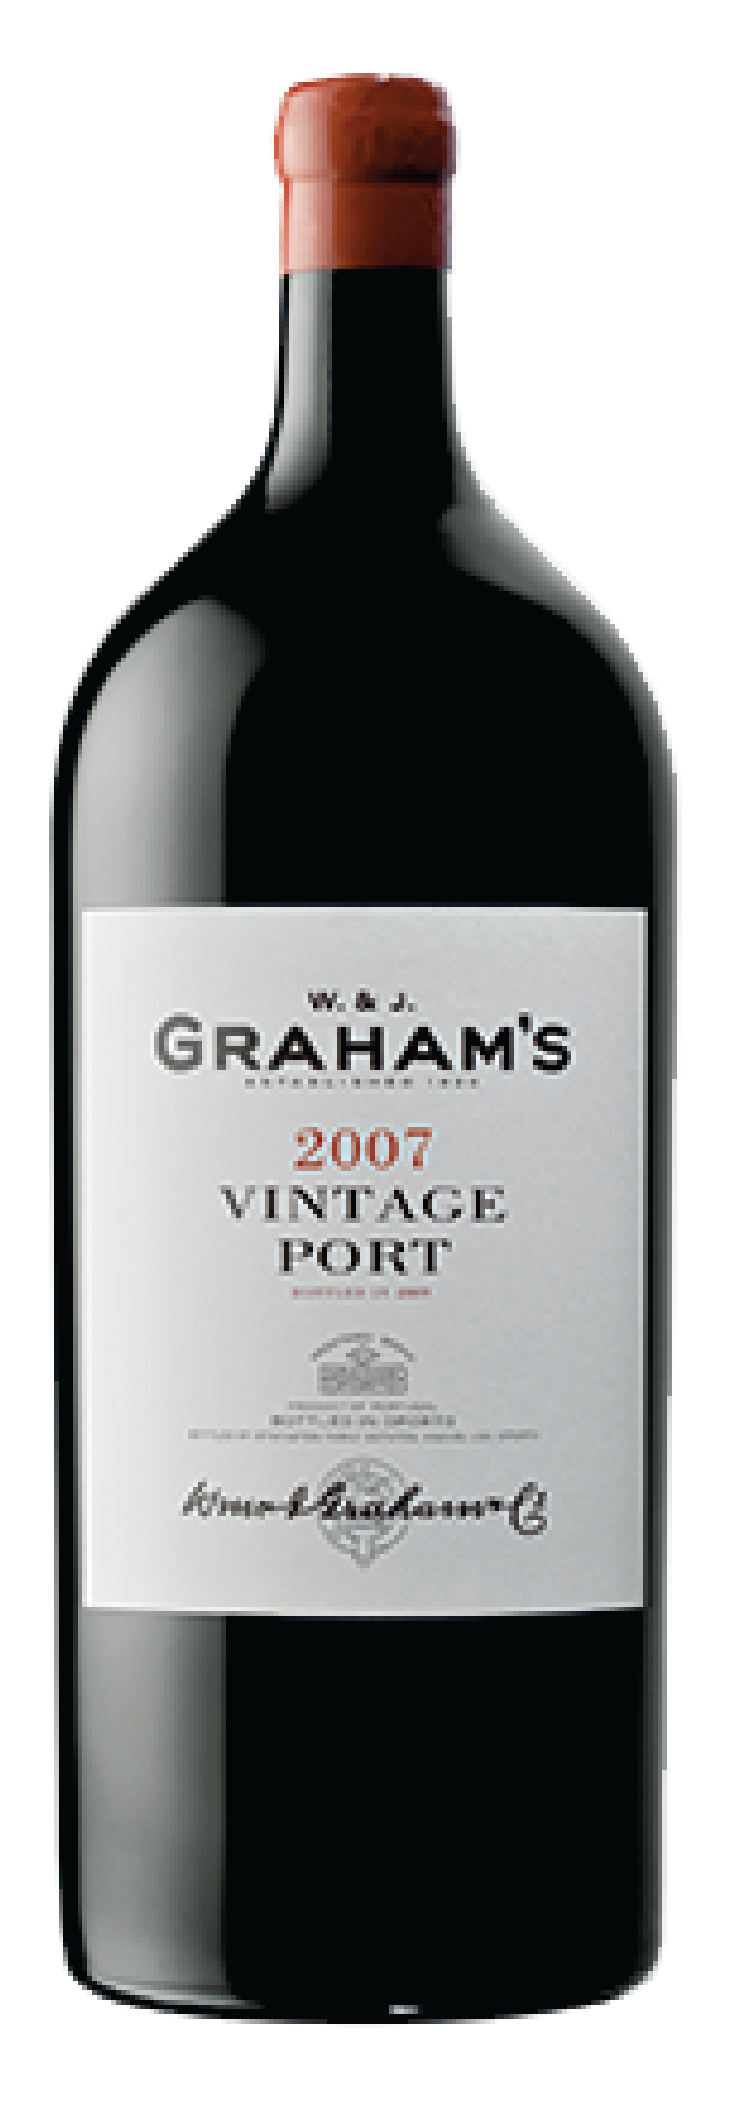 Product Image for GRAHAM'S VINTAGE PORT 2007 - METHUSELAH